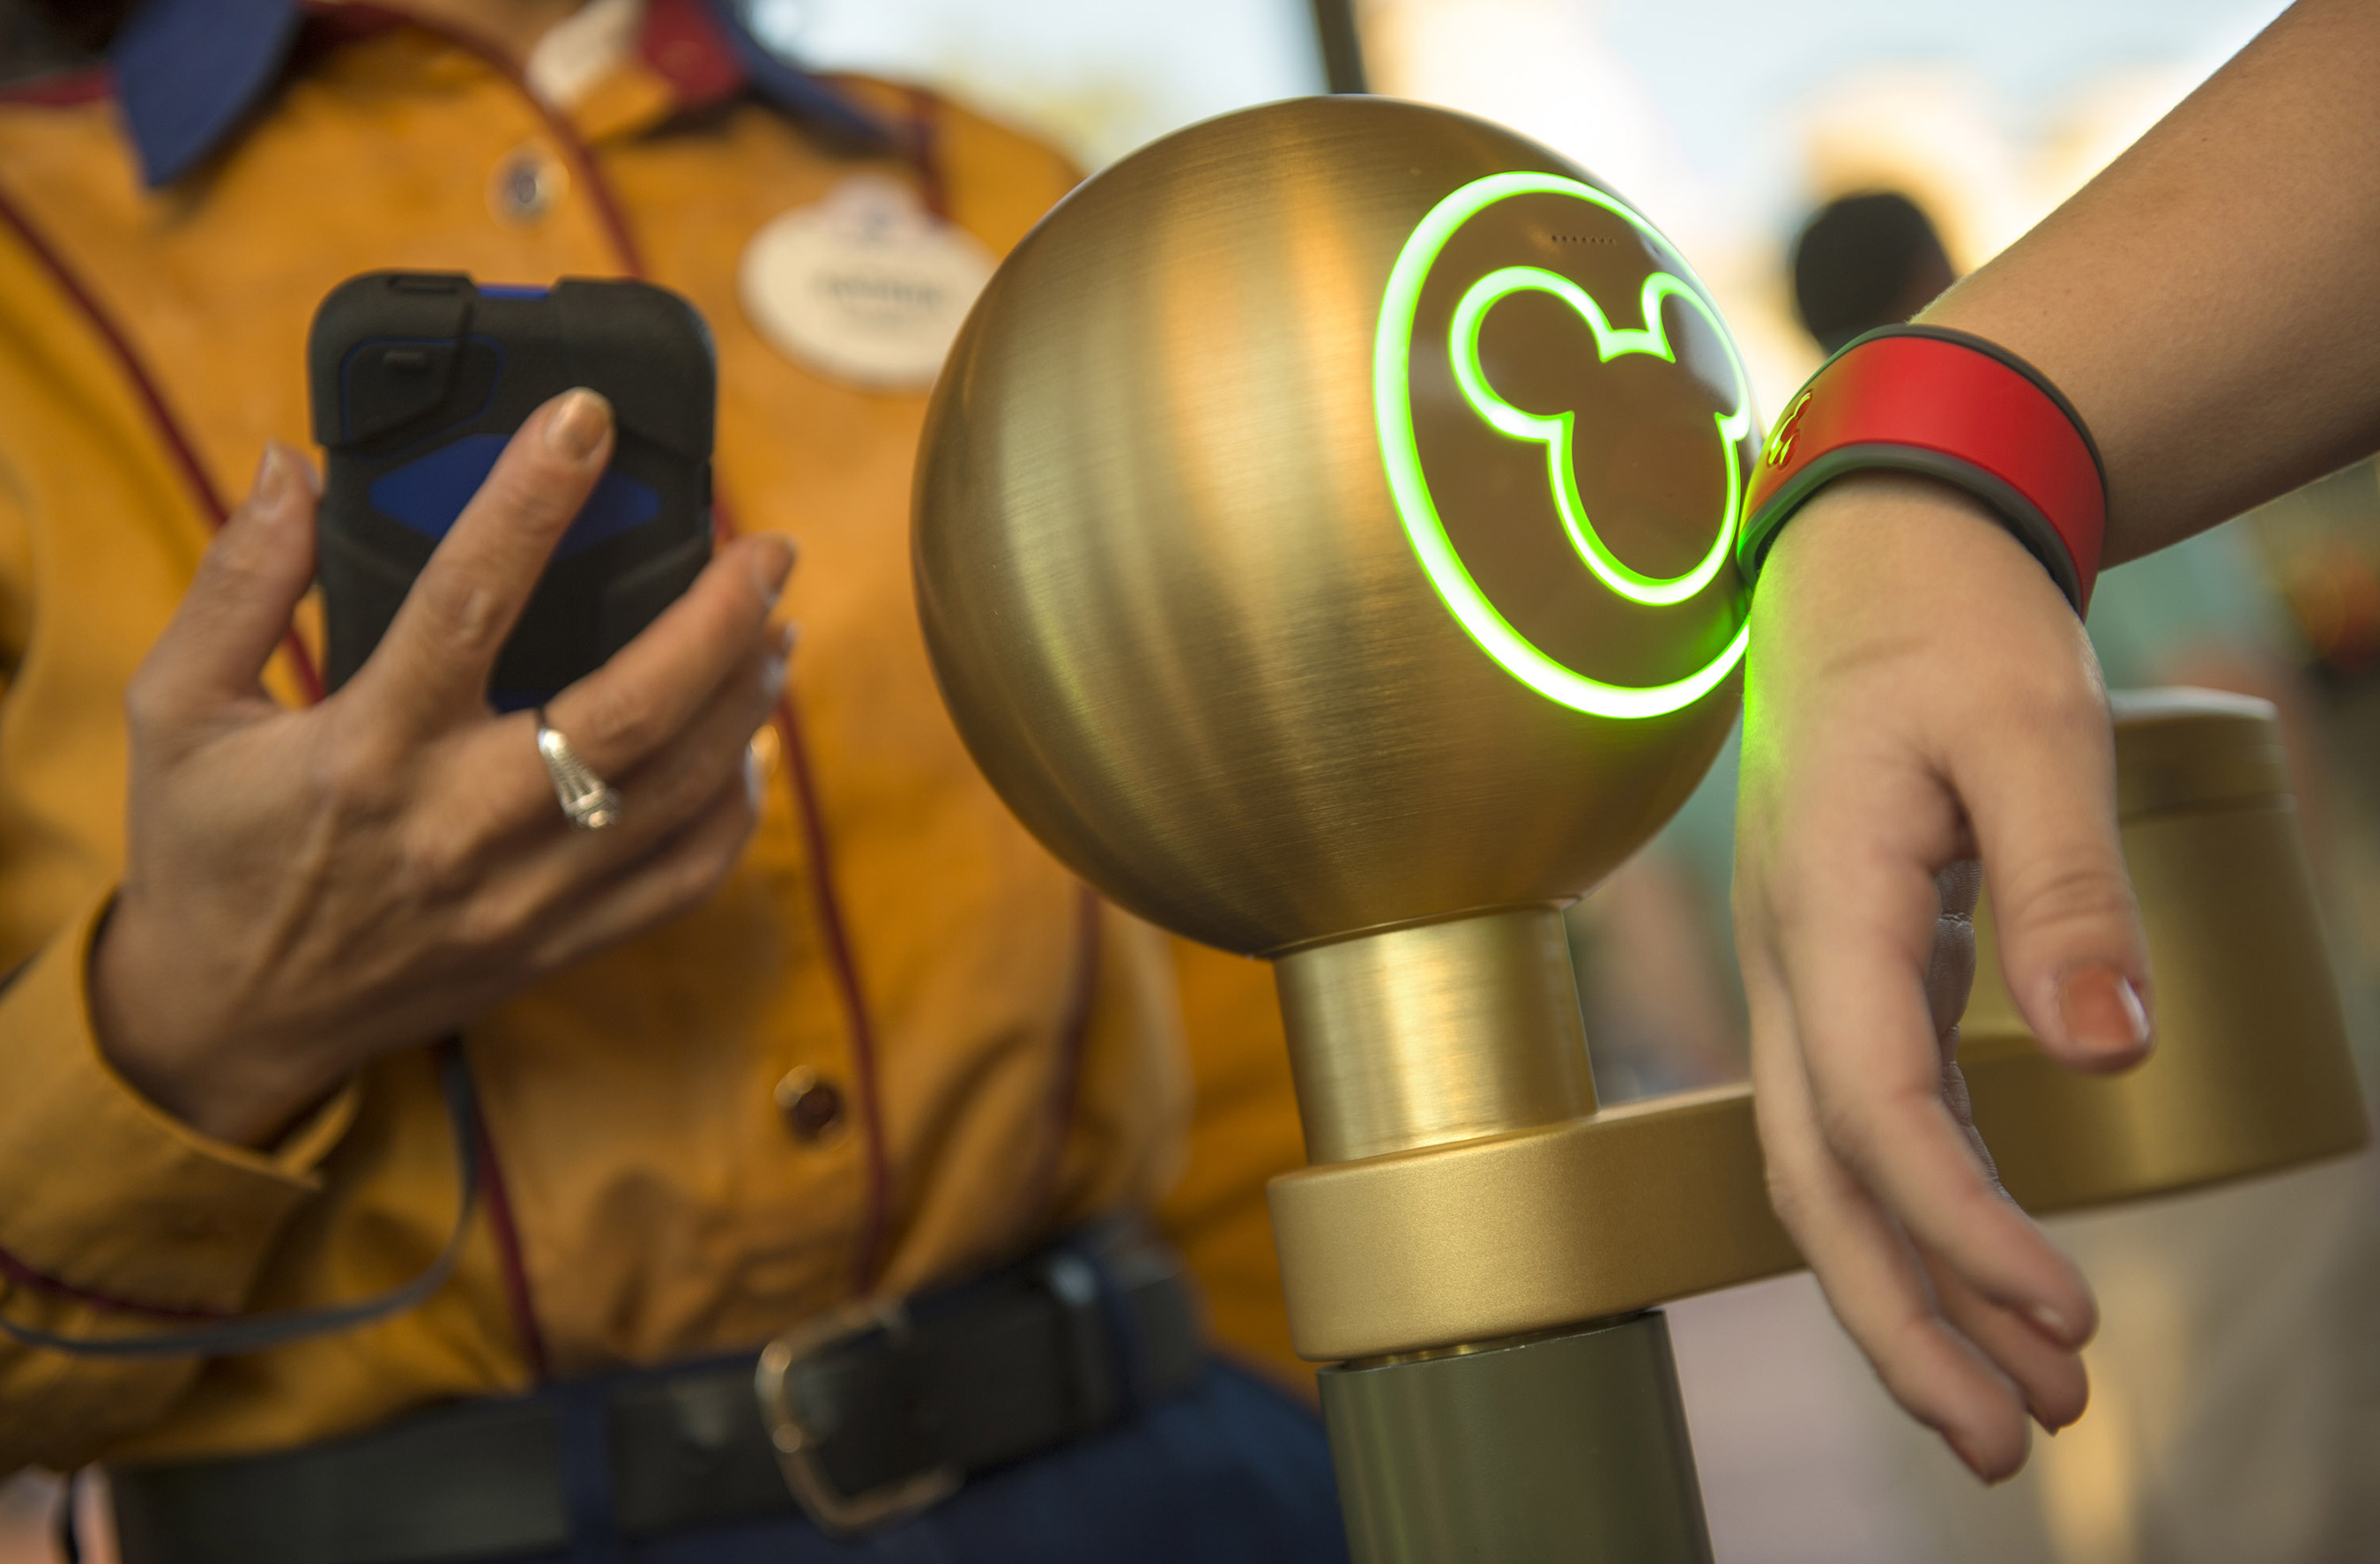 A Walt Disney World Resort guest uses a MagicBand to enter Magic Kingdom theme park in Lake Buena Vista, Fla. Guests also can use MagicBands to enter their Disney Resort hotel room, buy food and merchandise, enter Walt Disney World Resort theme parks and water parks, access their selected FastPass+ experiences and connect to Disney's PhotoPass. MagicBands are part of the new MyMagic+, which has the ability to connect nearly all aspects of the guest vacation experience at Walt Disney World Resort. (Kent Phillips, photographer)